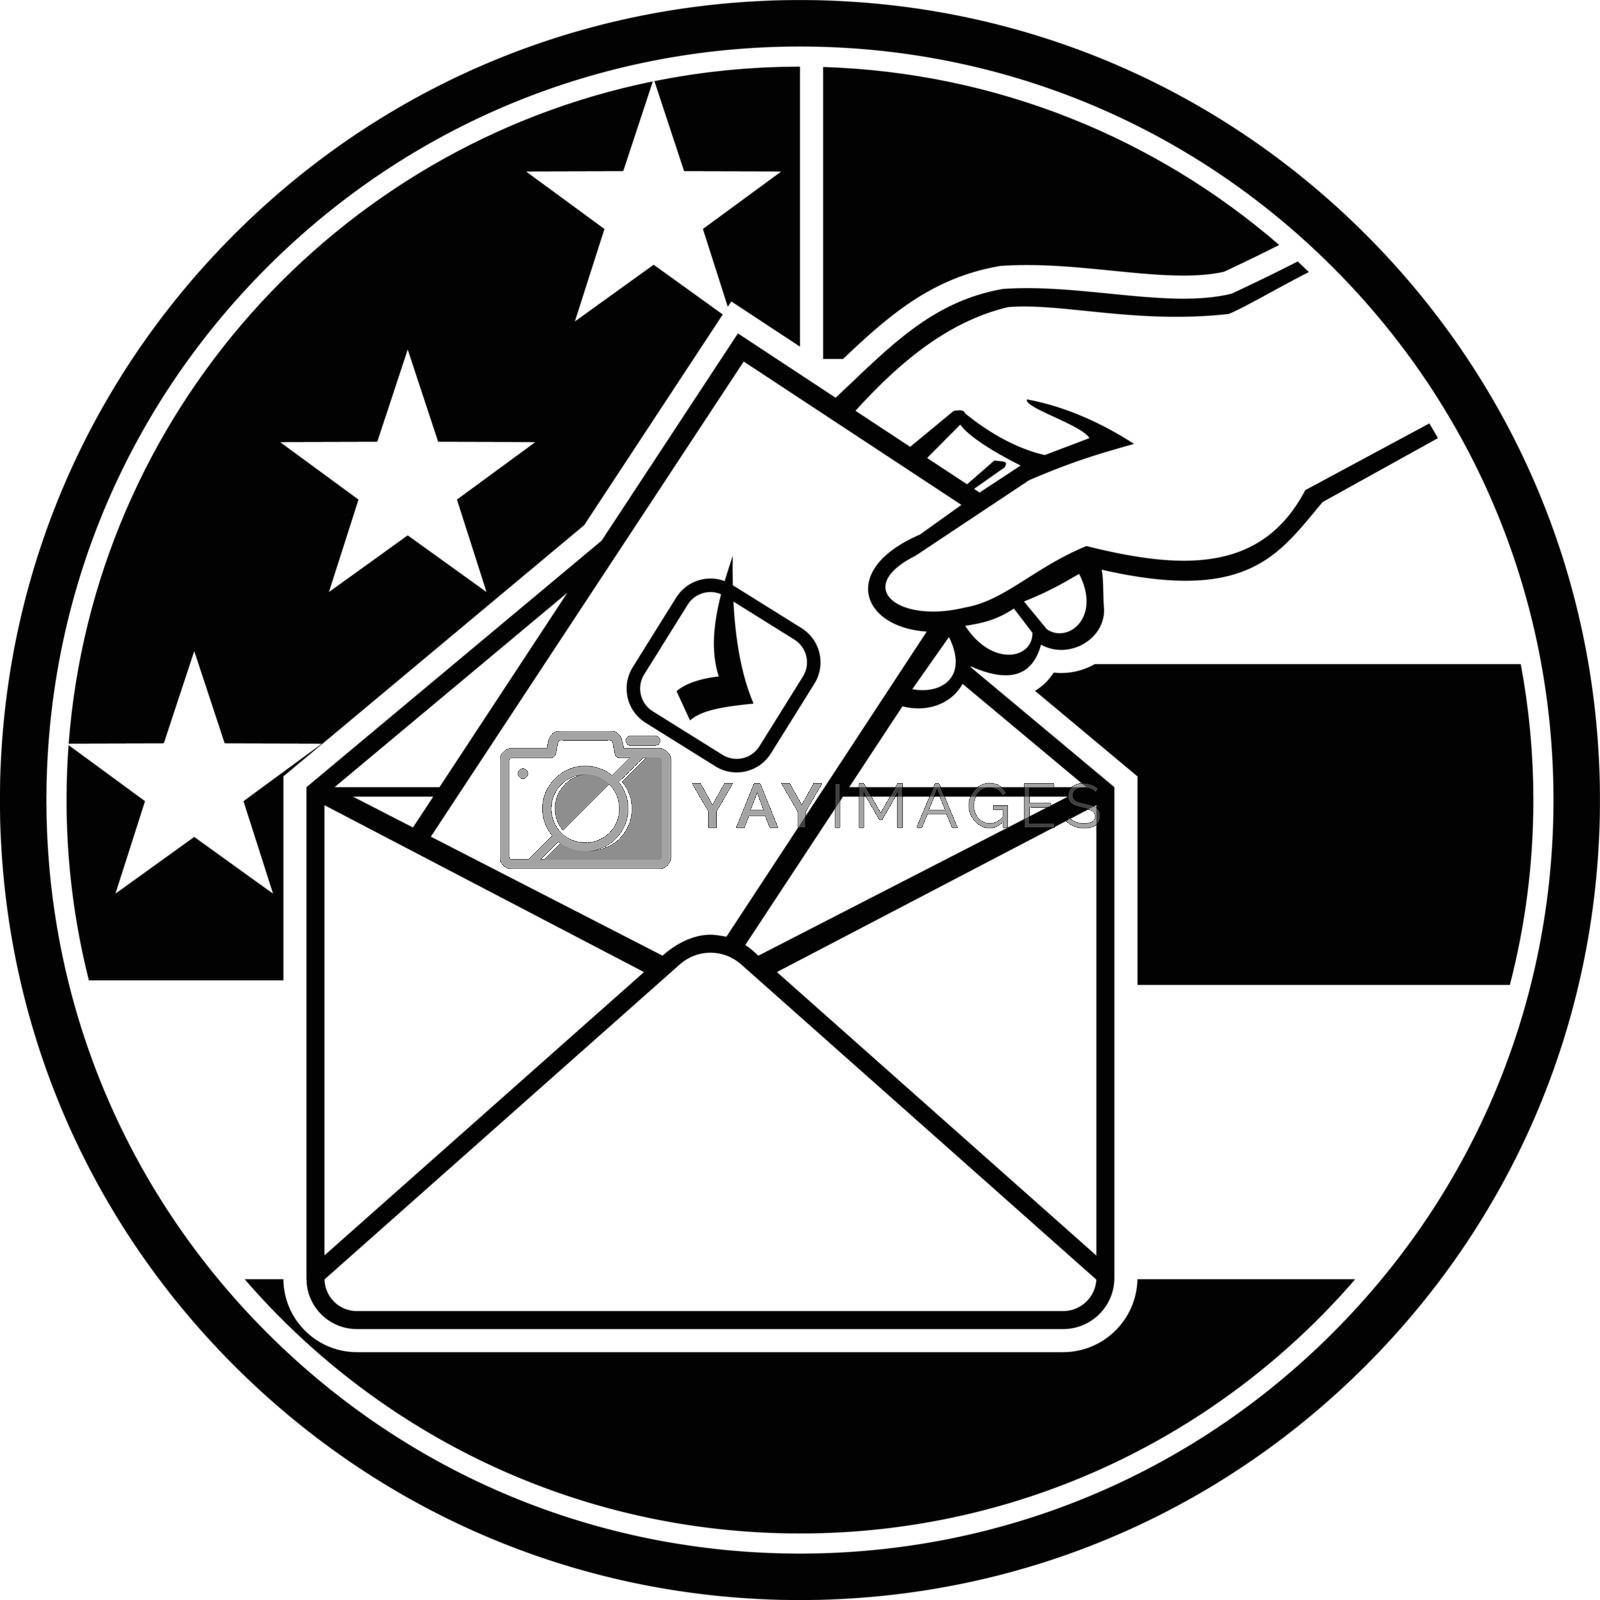 Retro black and white style illustration of a hand of an American voter putting ballot or vote inside postal ballot envelope with USA stars and stripes flag inside circle on isolated background.